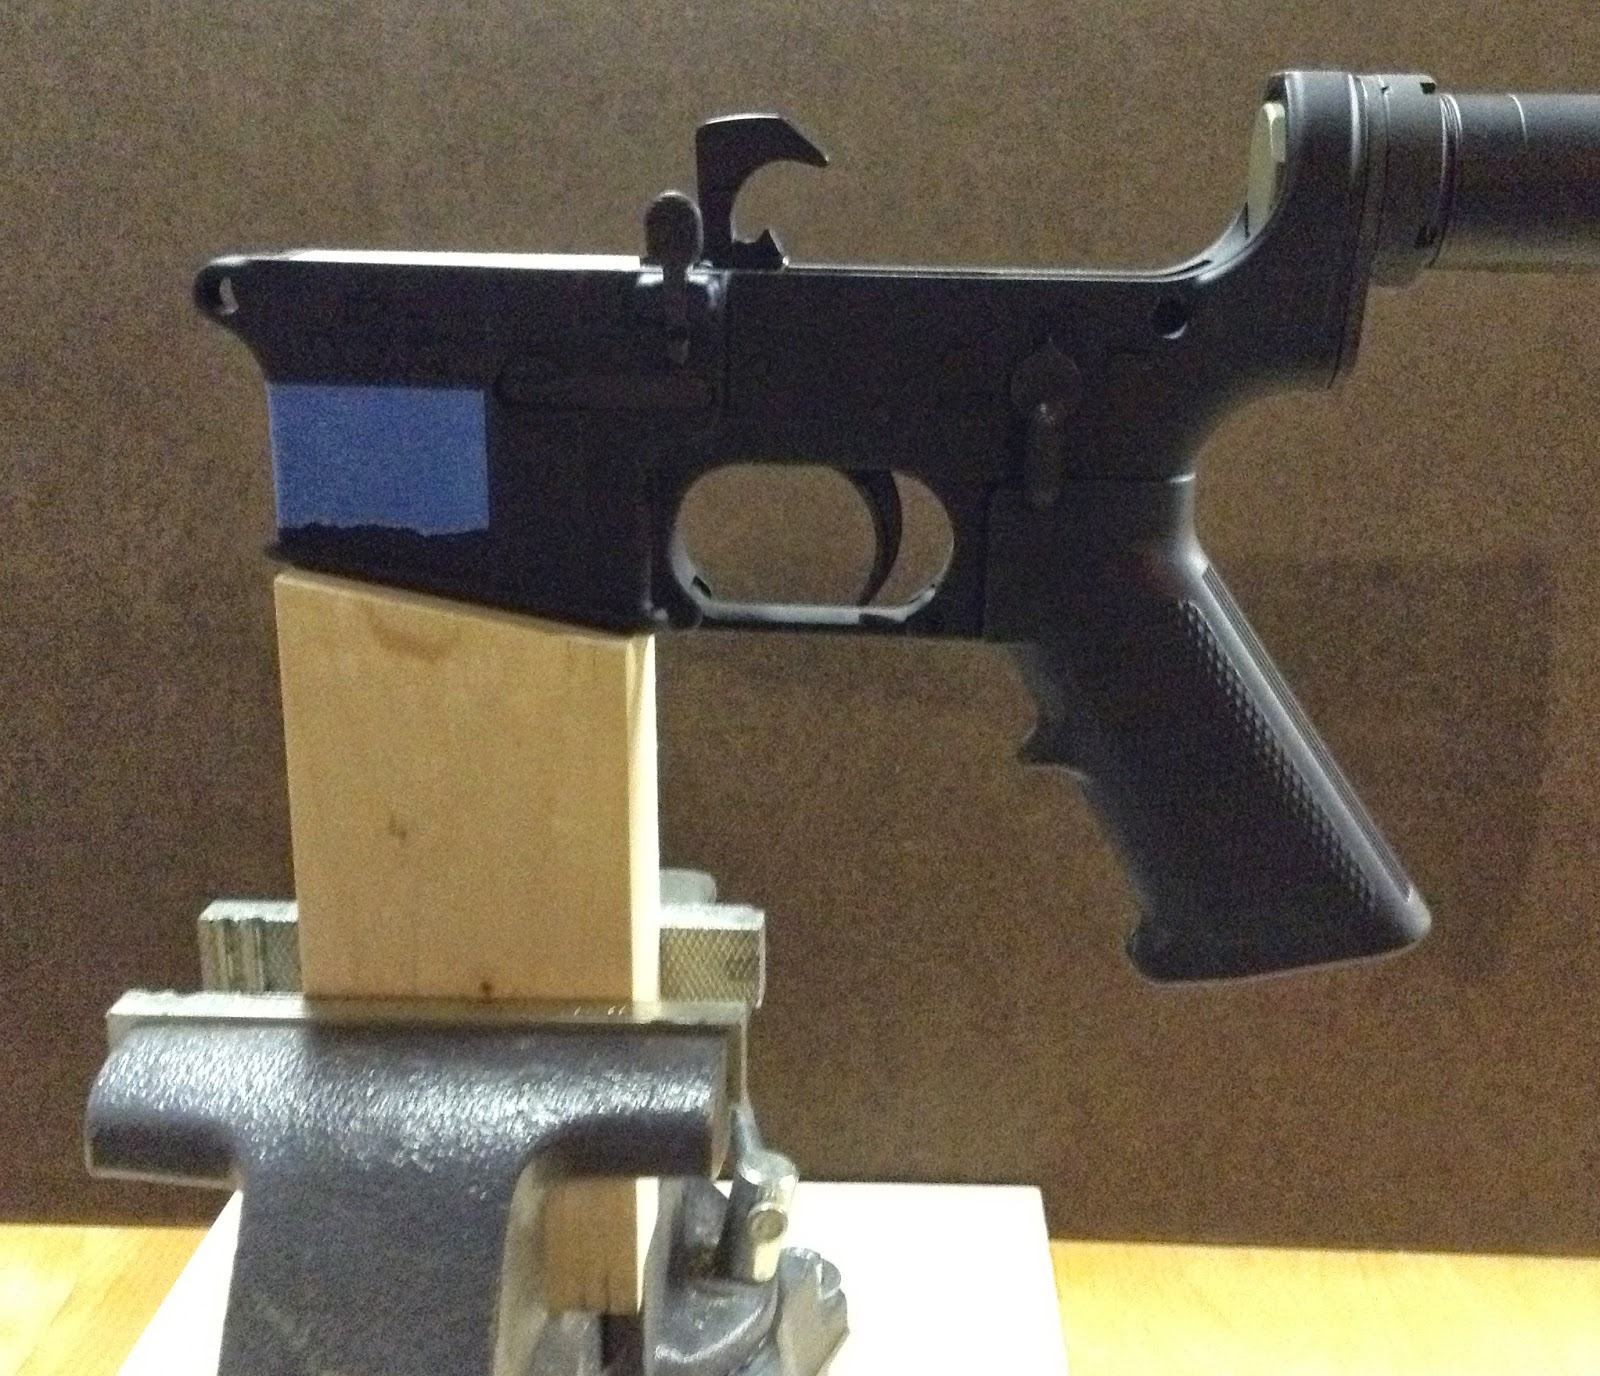 Diy Defense Tools For Building An Ar 15 Lower